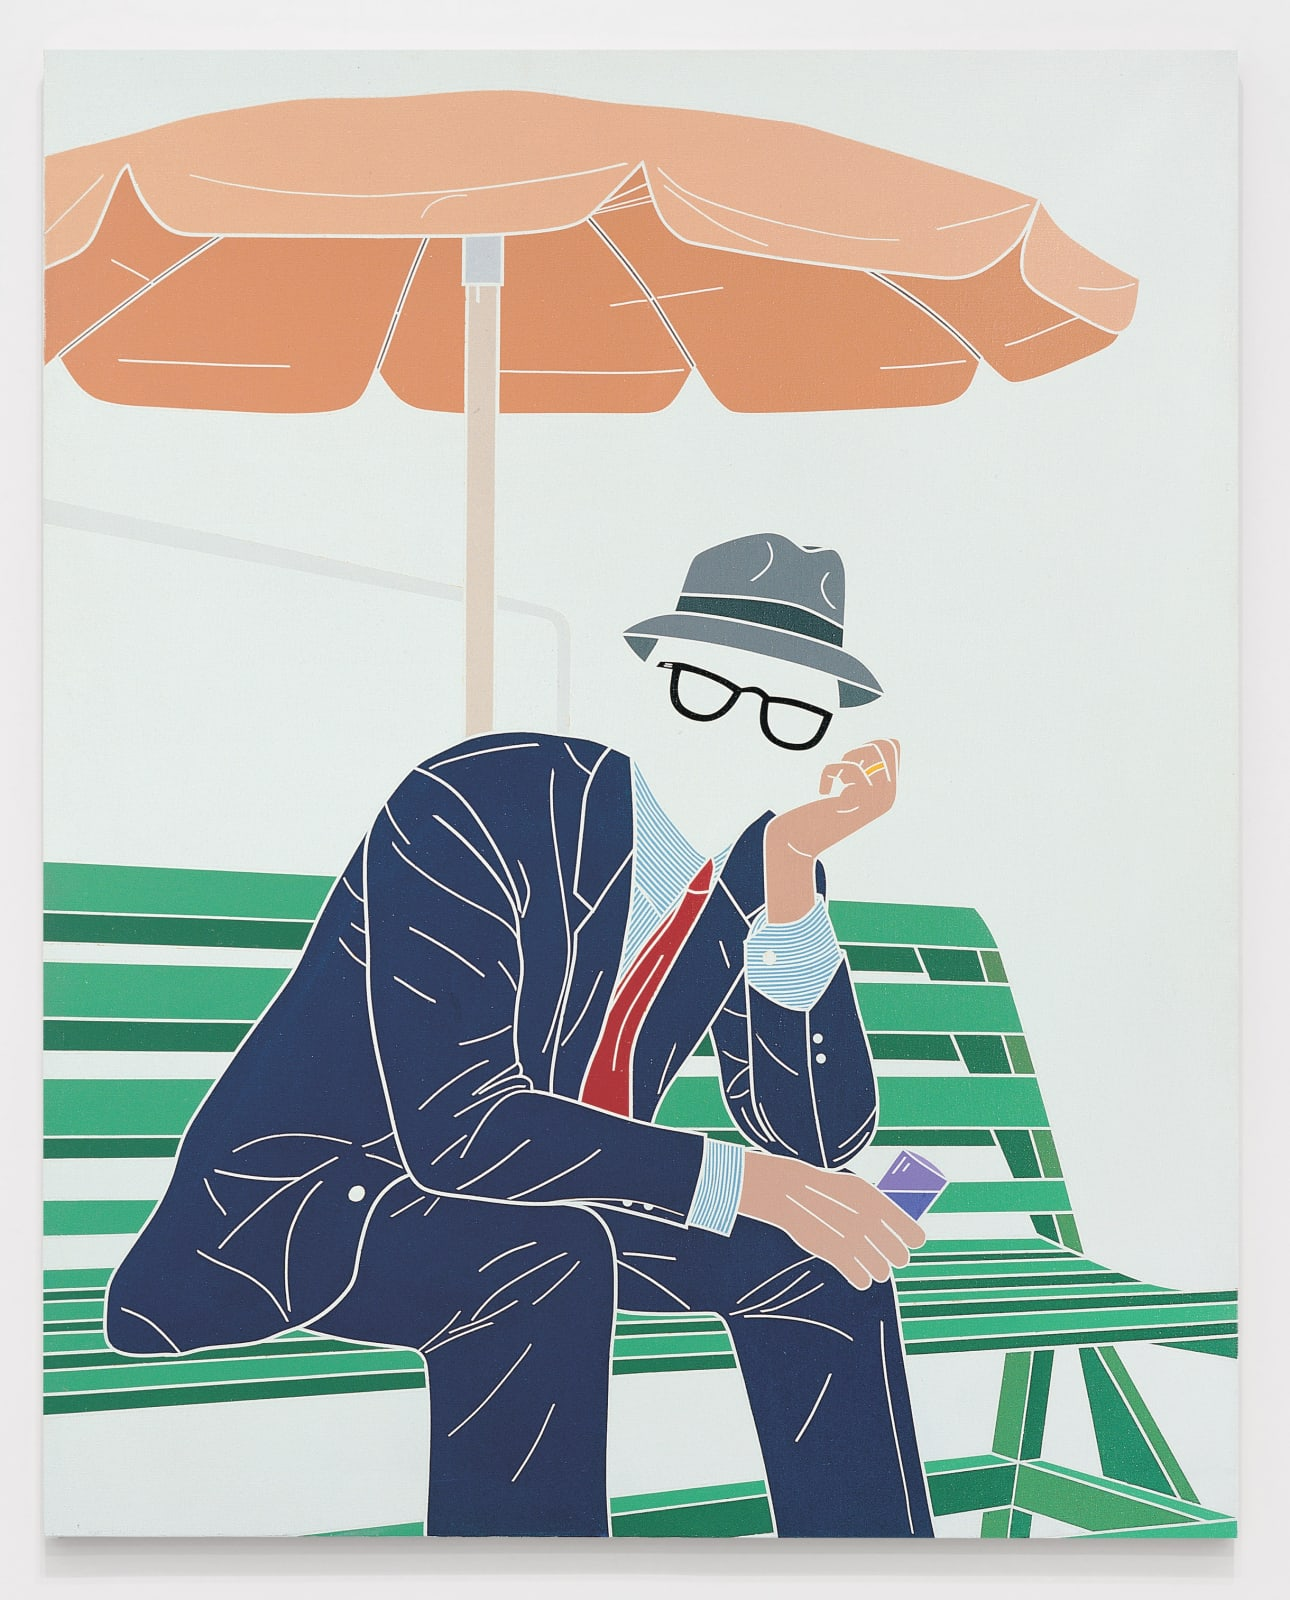 EMILIO TADINI, L'uomo dell'organizzazione. Weekend al parco (The Man of the Organisation. Weekend at the Park), 1968